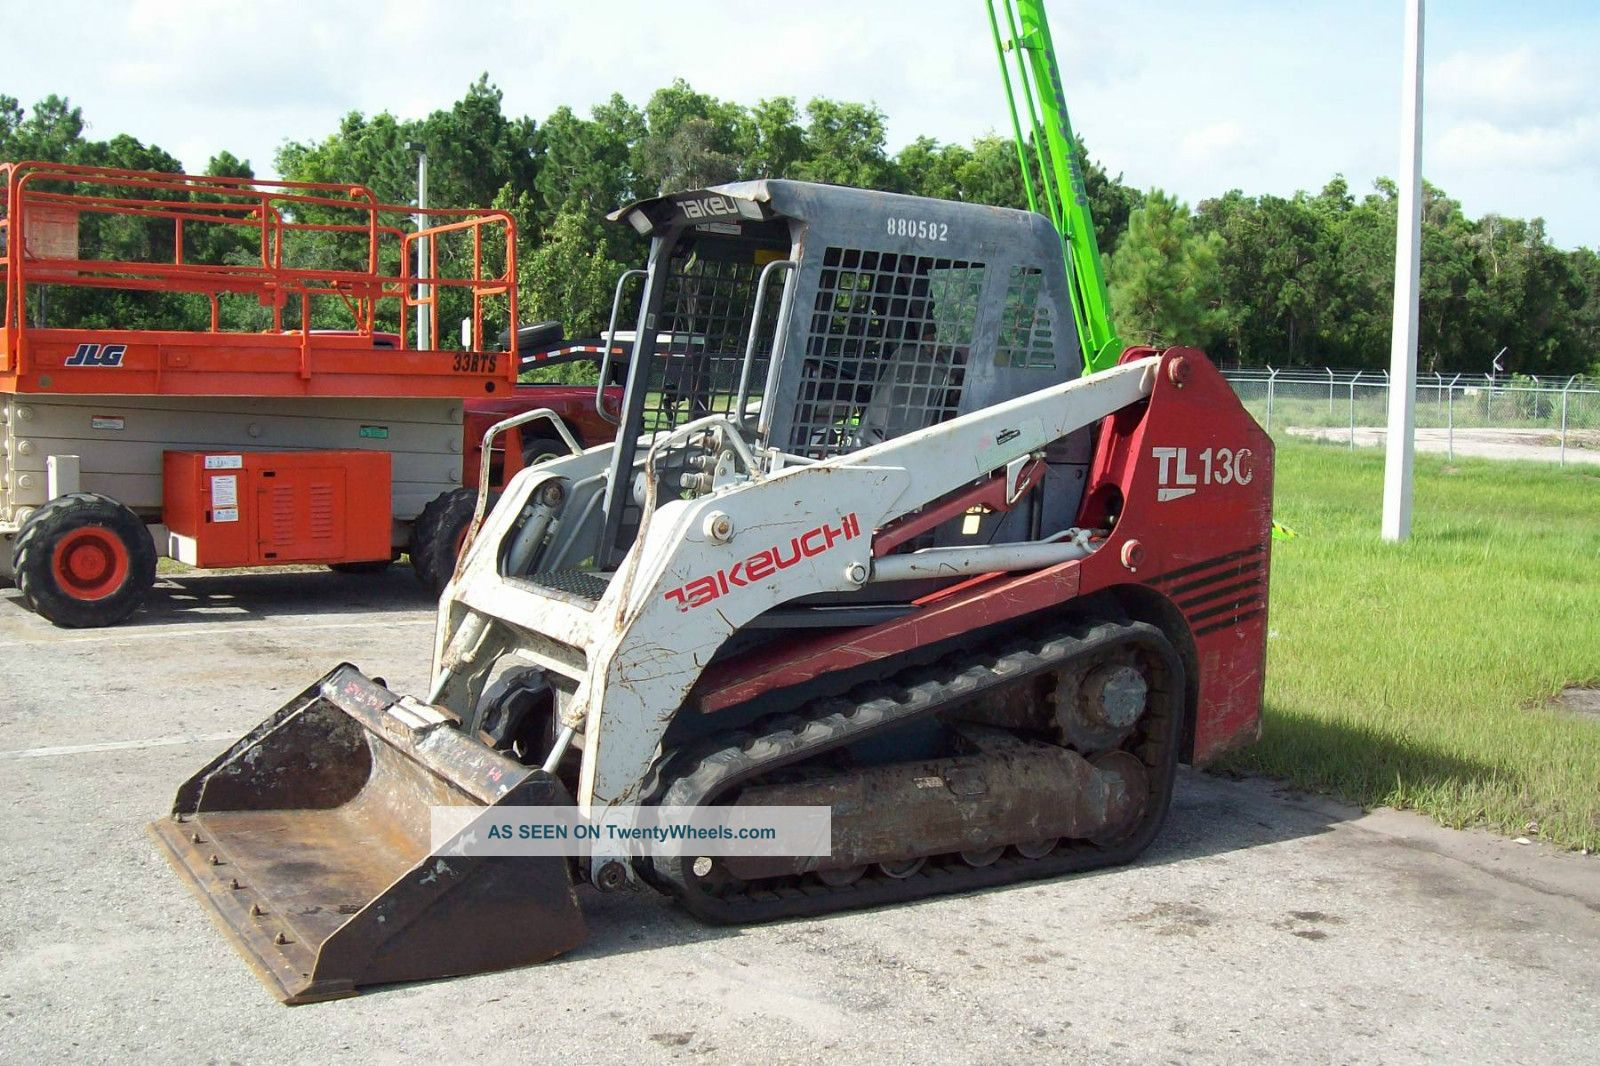 Curtain 20Side 20Trailers together with Semi Truck additionally Daf 3300 6x4 Flatbed Sarens Wsi Wsi15 1009 together with Semi Truck Clipart Black And White besides 9962 Takeuchi tl130 track loader  67 hp  joystick controls  lift 1620 lbs  tracks. on flatbed semi trailers